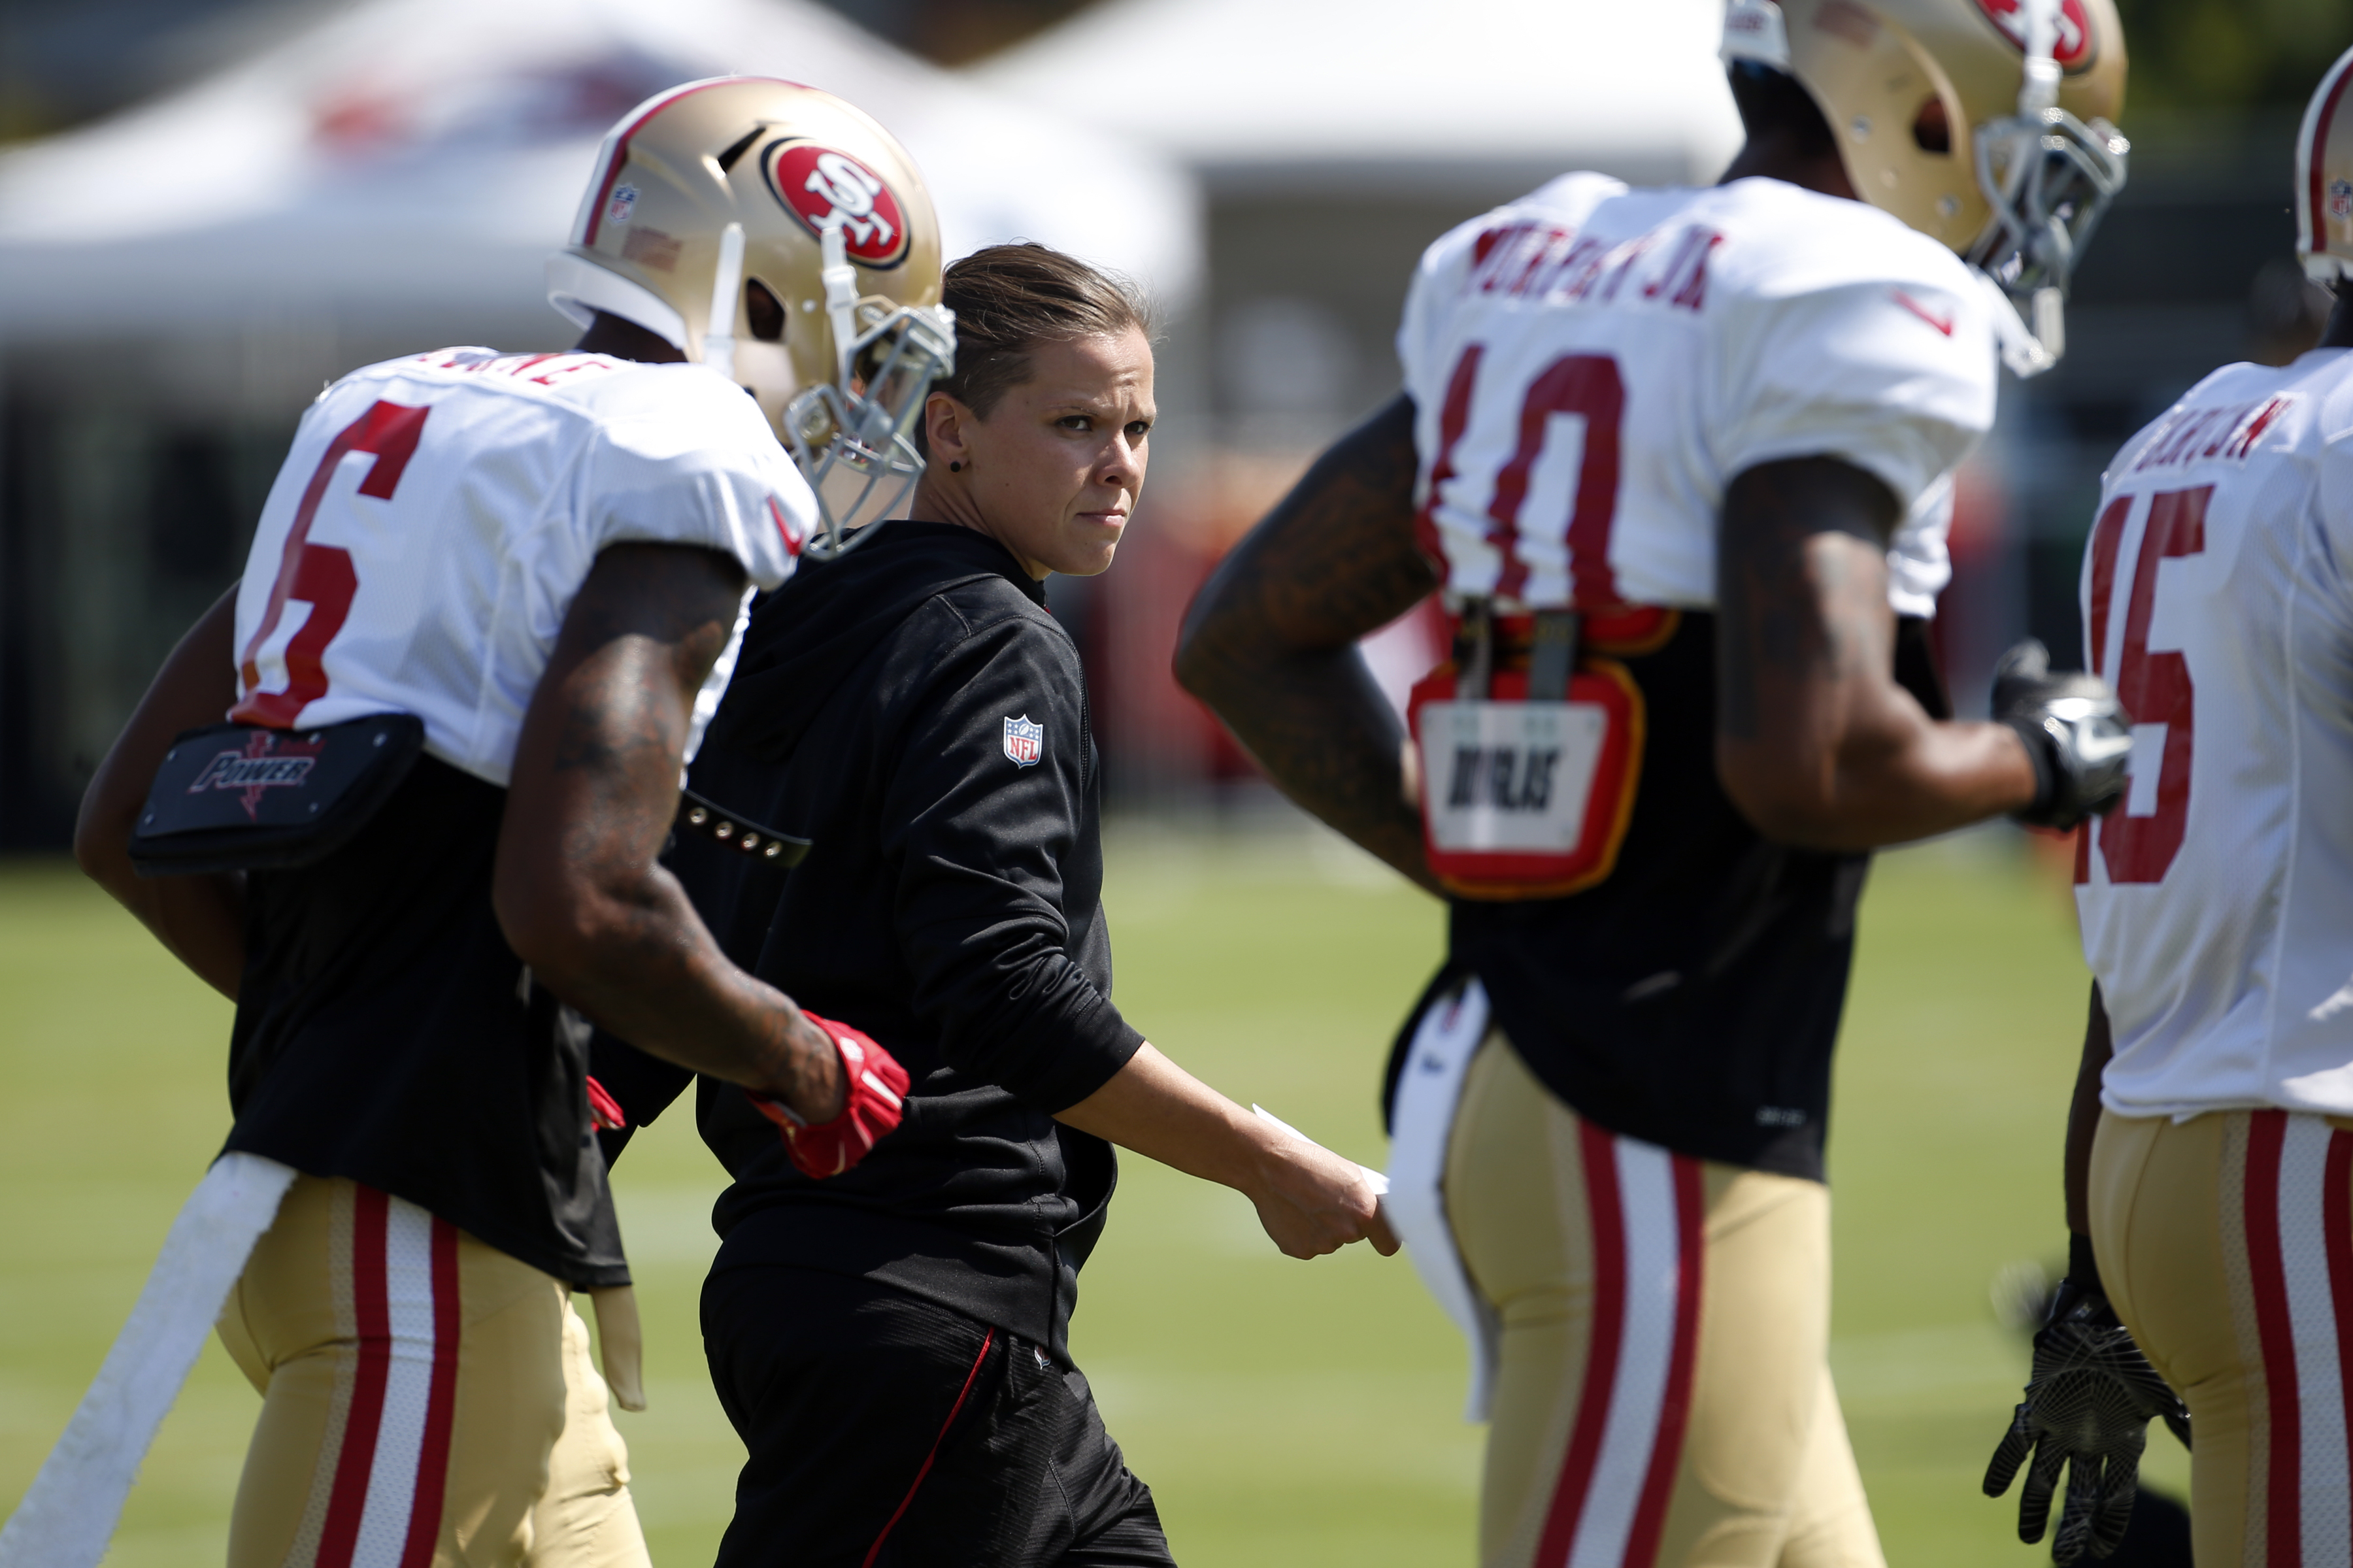 San Francisco 49ers break new ground hiring first openly LGBT coach